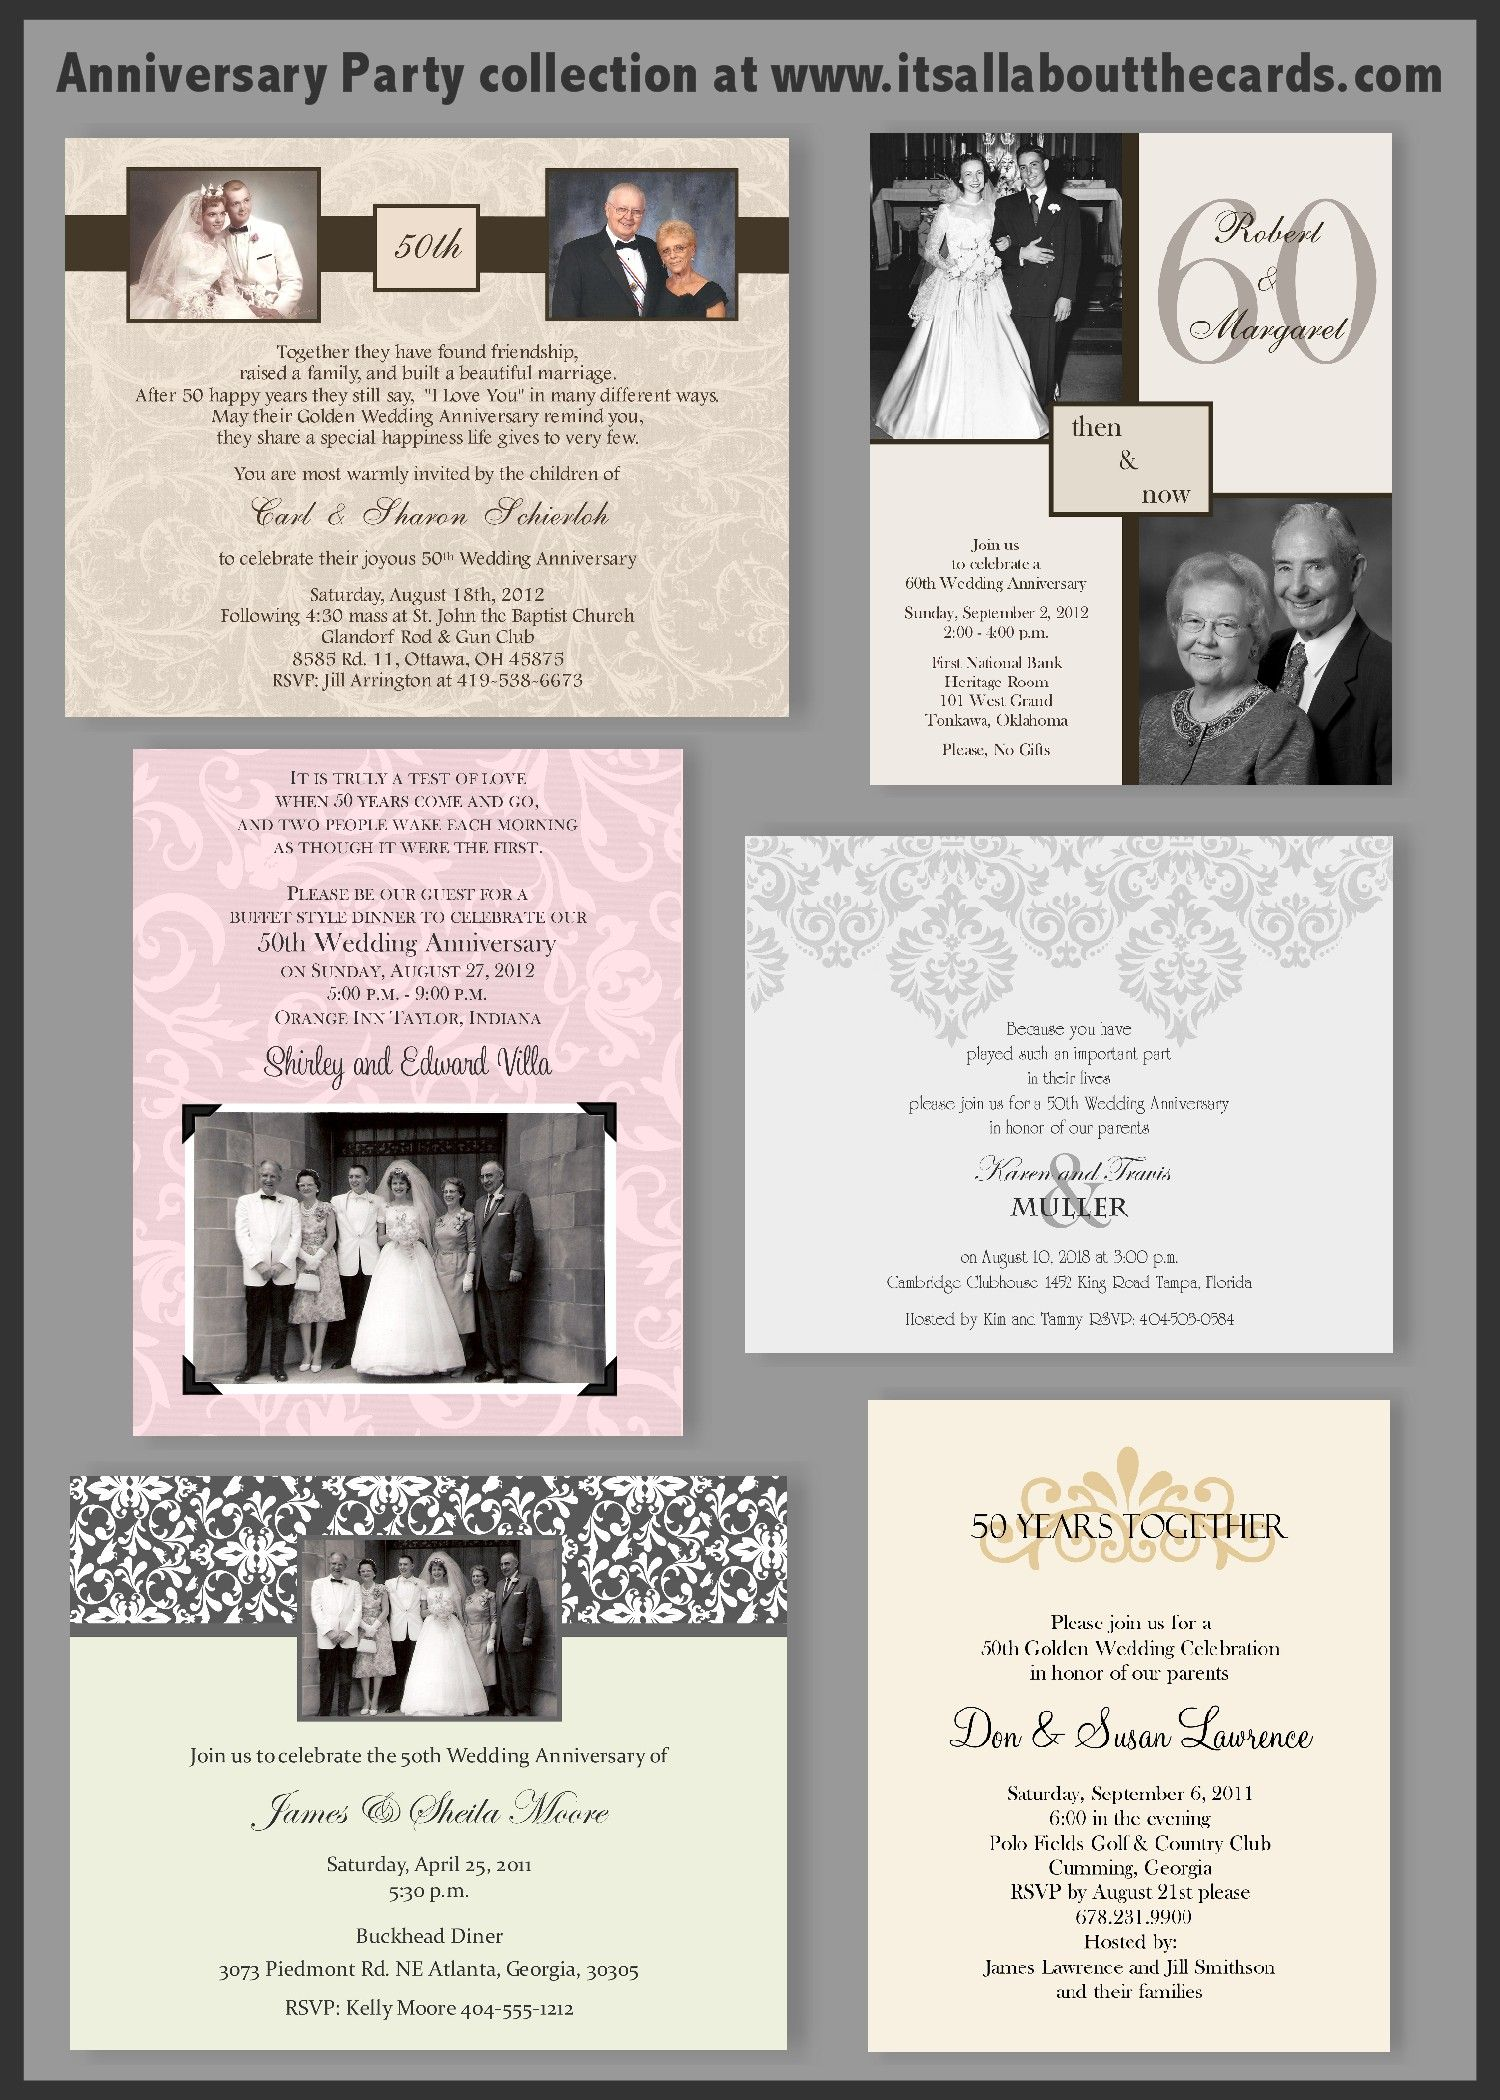 Anniversary invitation ideas at www.itsallaboutthecards.com. | Mom ...